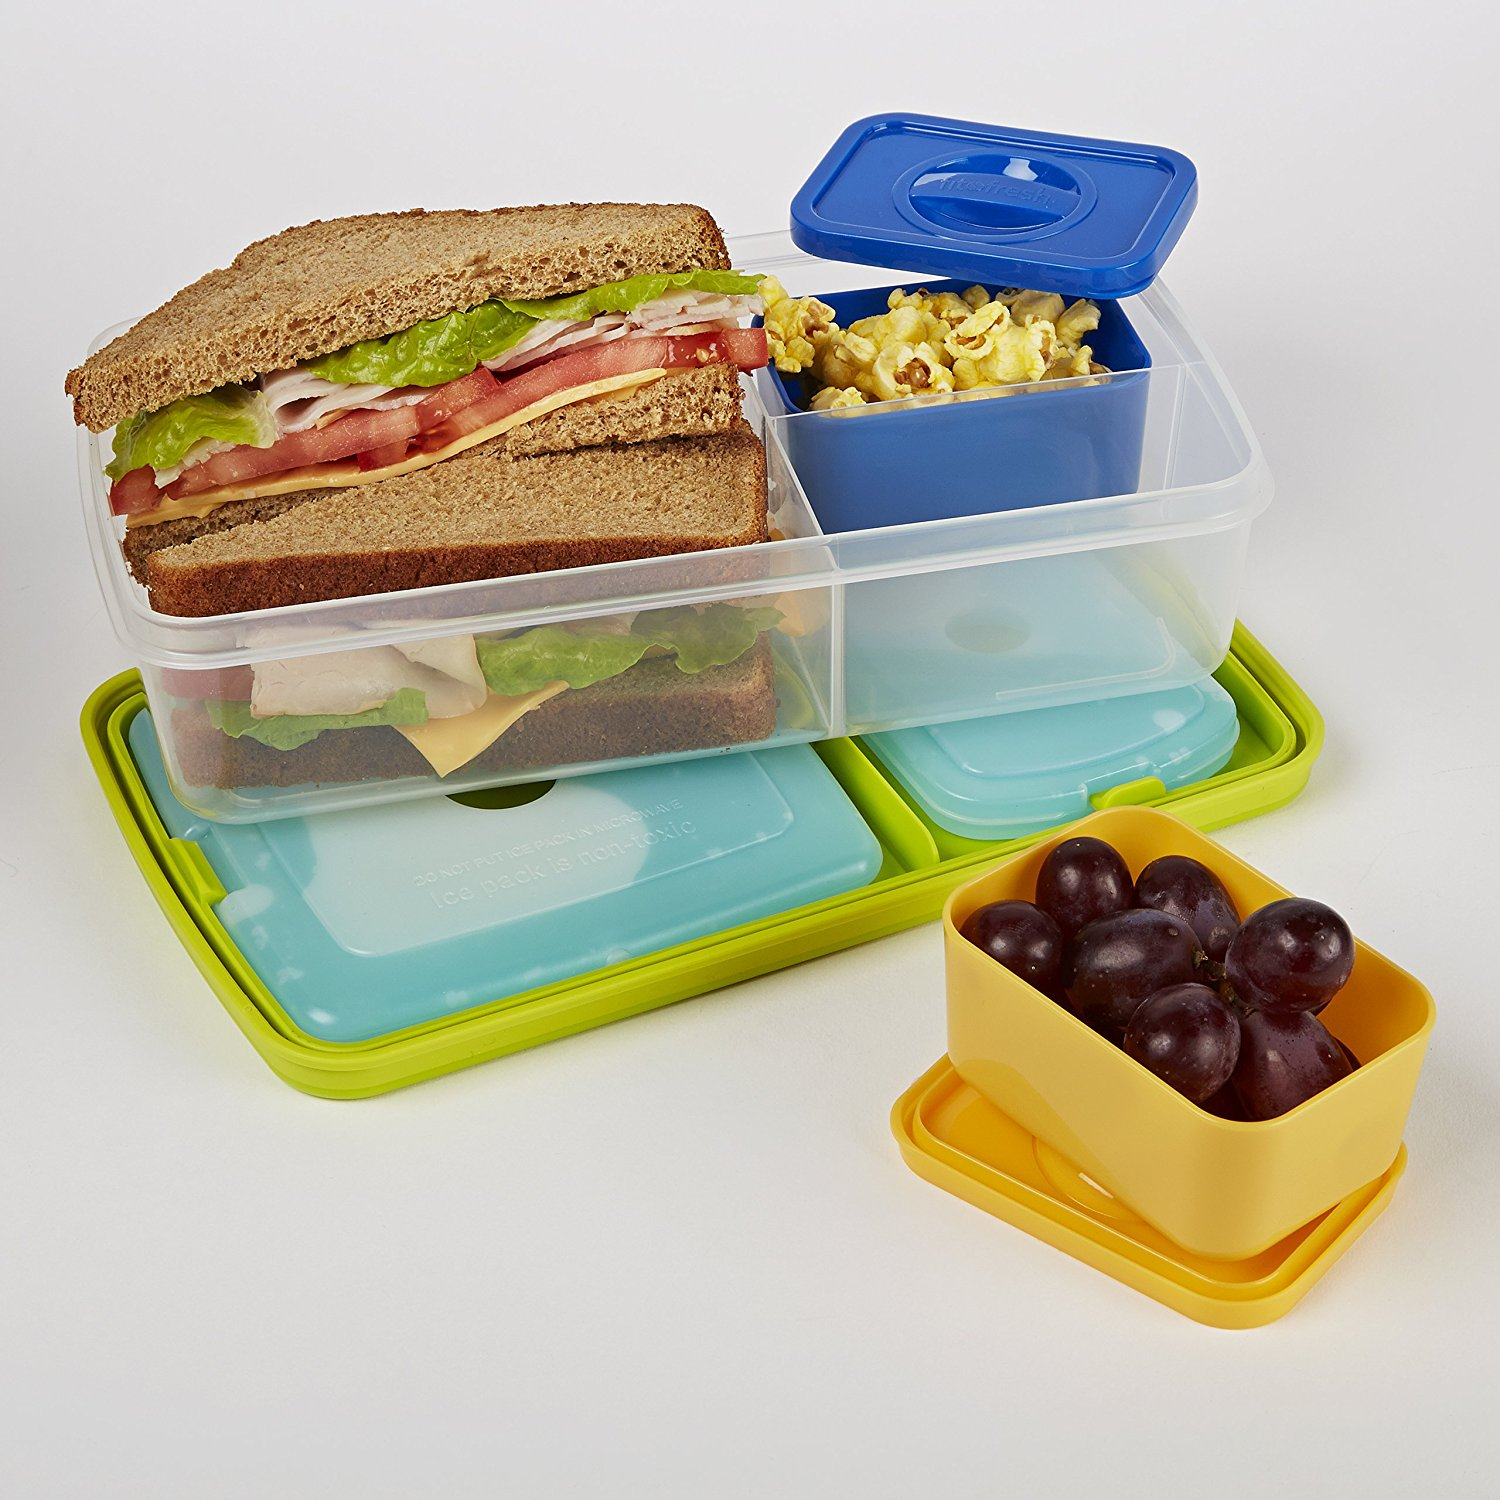 fit fresh bento box lunch kit with reusable plastic containers best offer. Black Bedroom Furniture Sets. Home Design Ideas